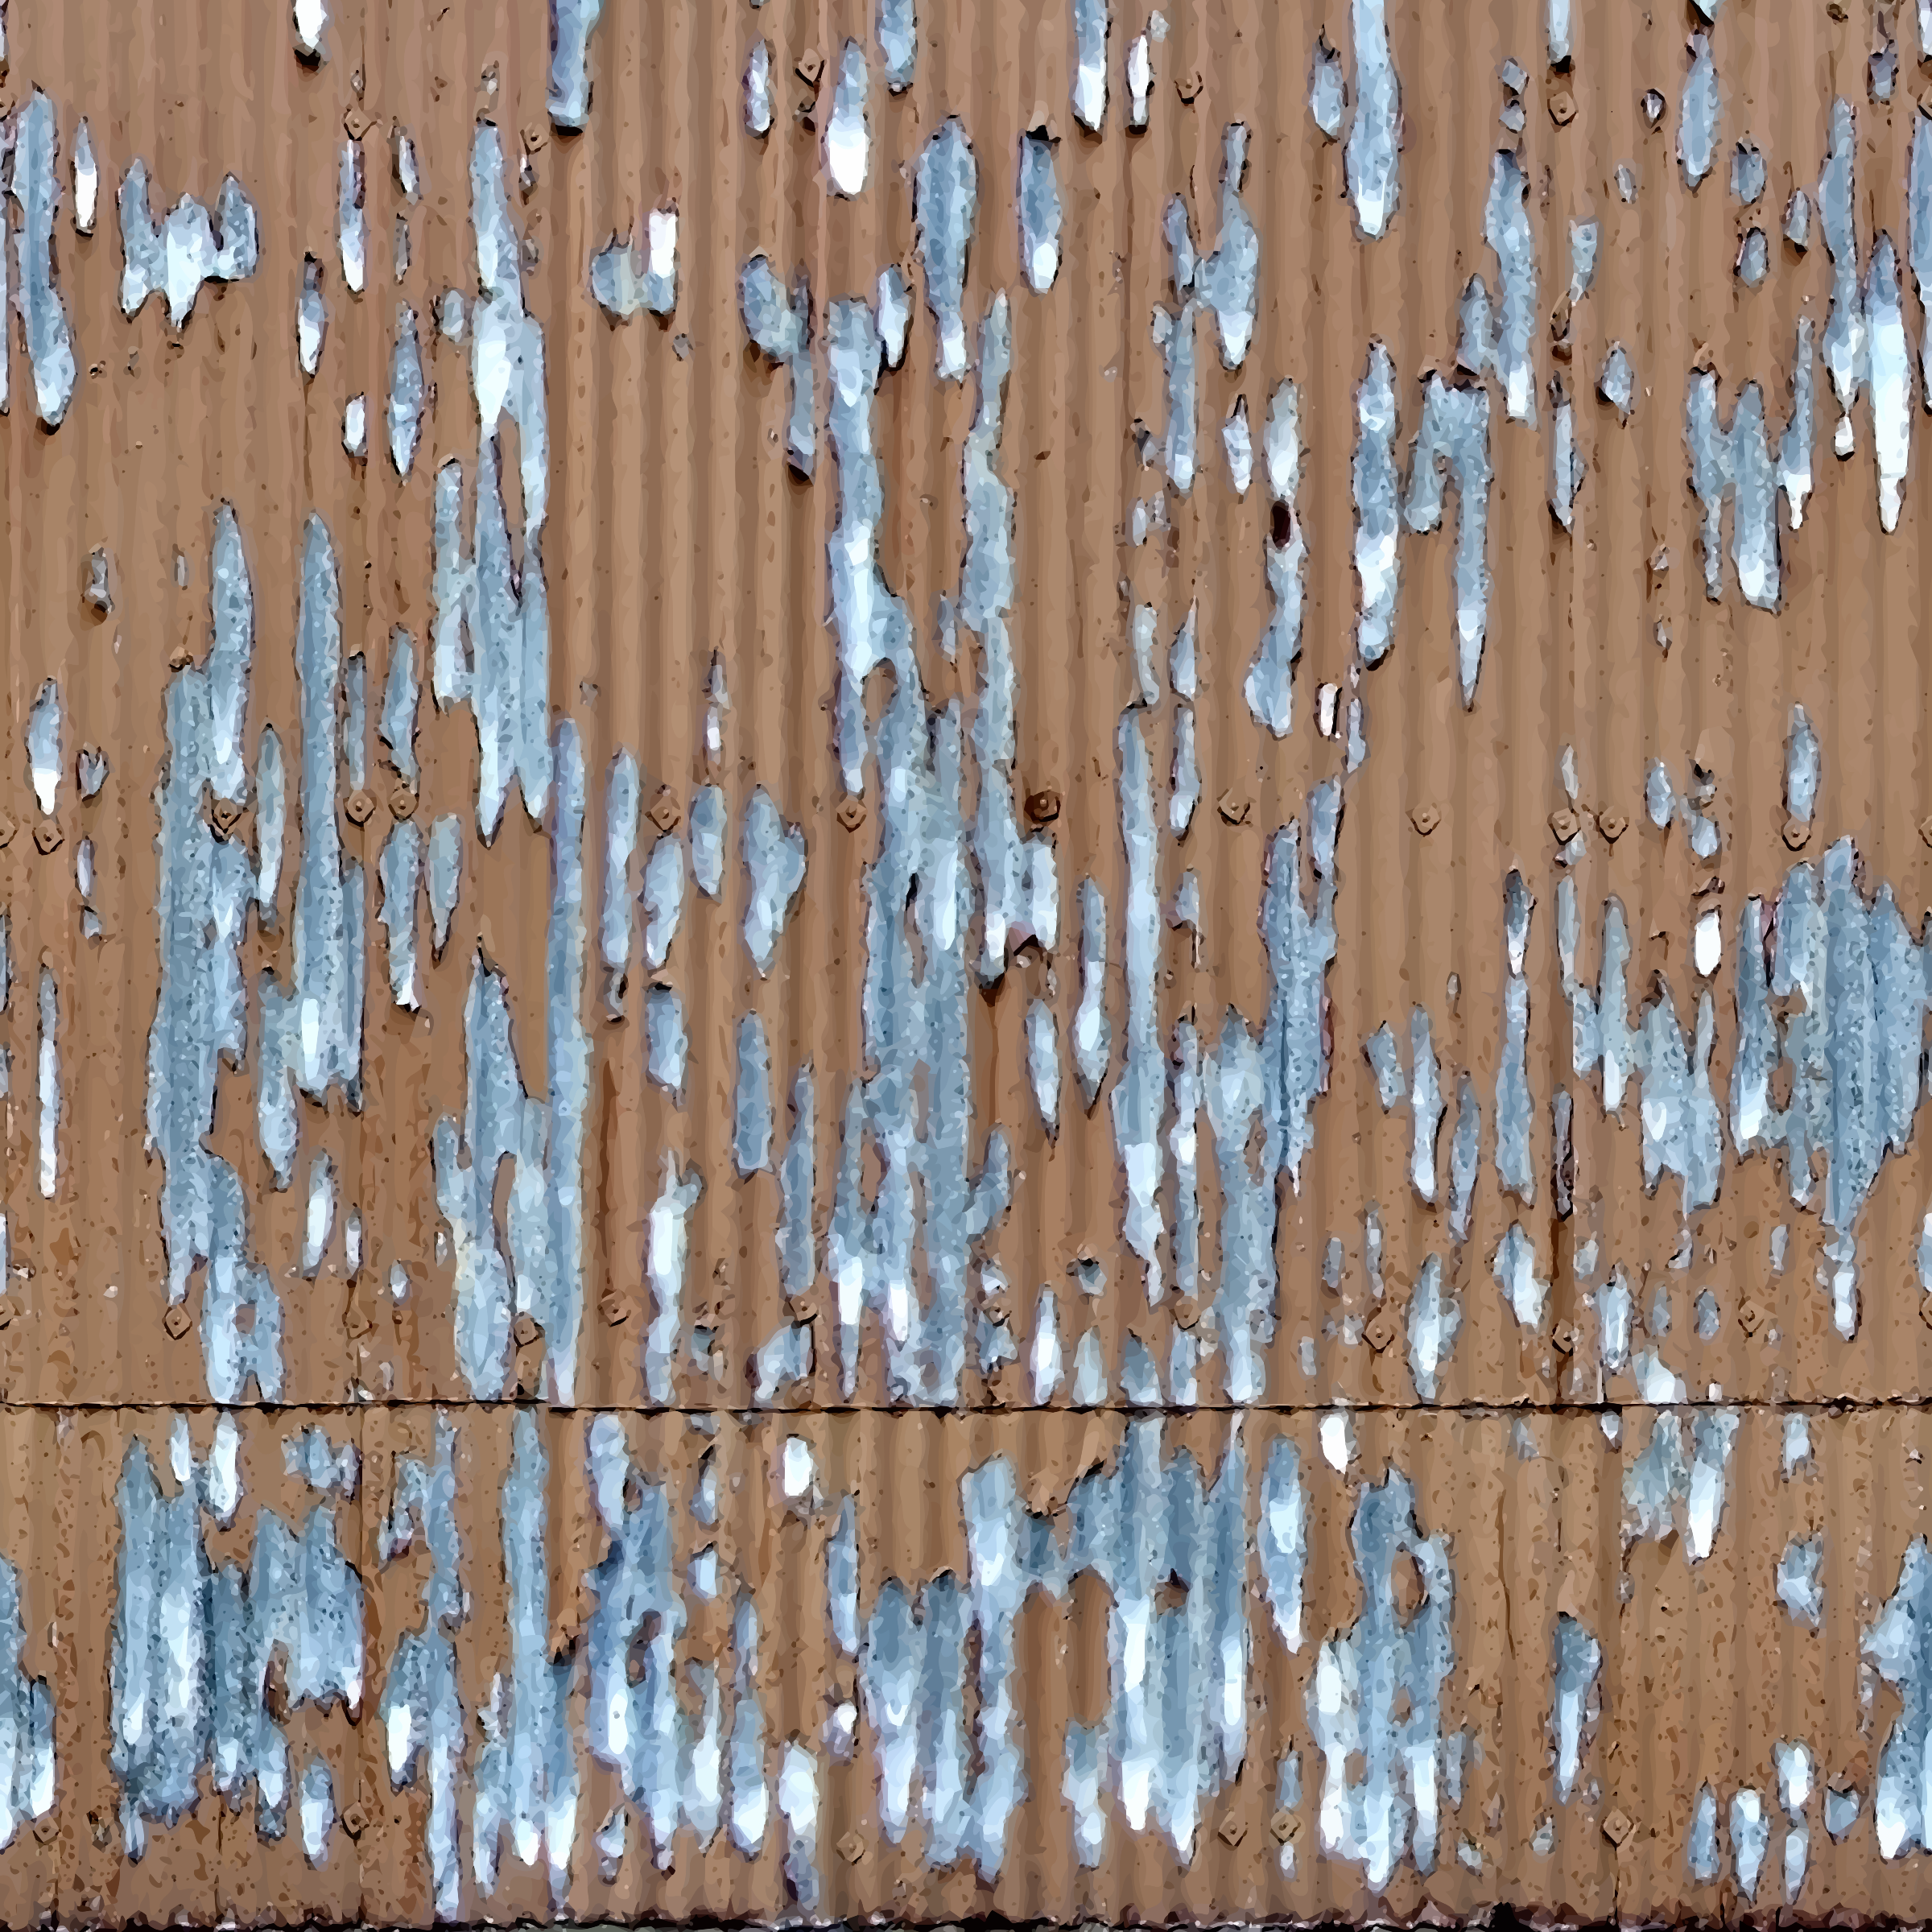 Corrugated metal 13 by Firkin